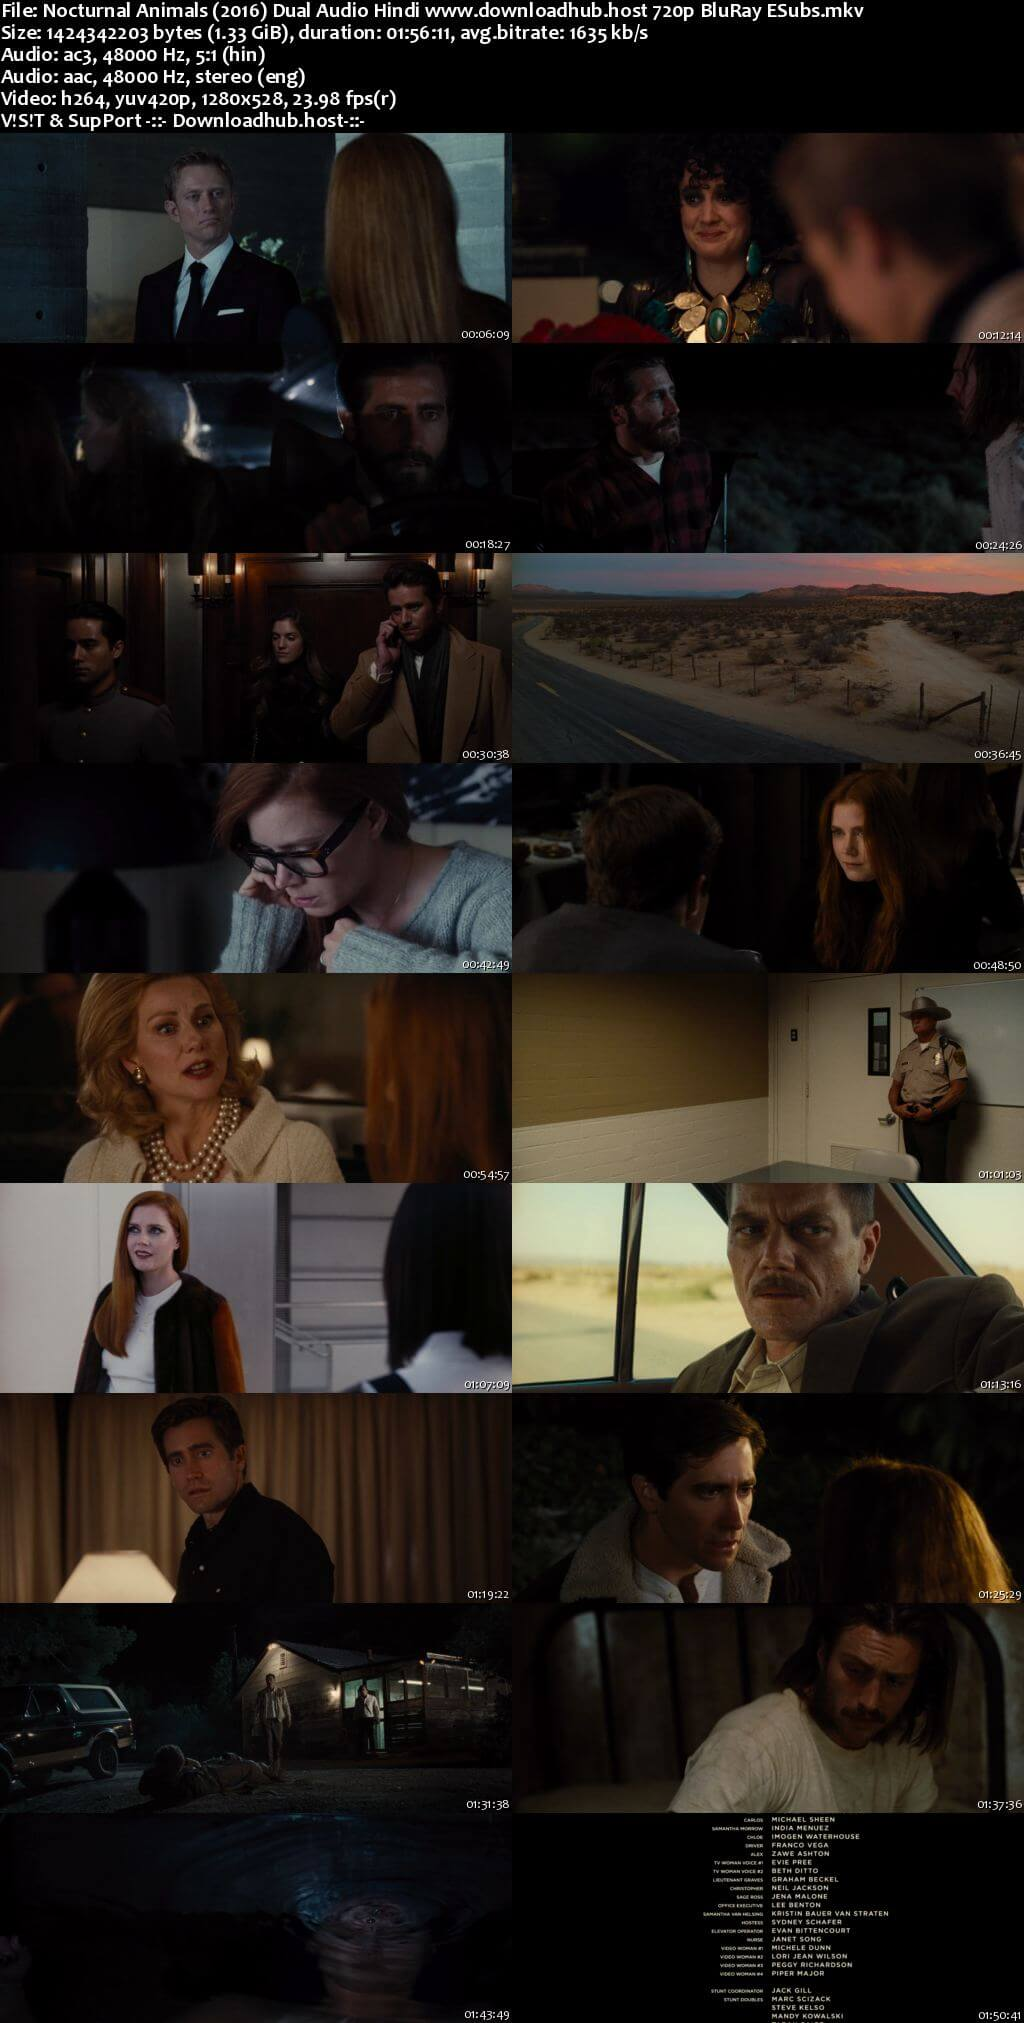 Nocturnal Animals 2016 Hindi Dual Audio 720p BluRay ESubs